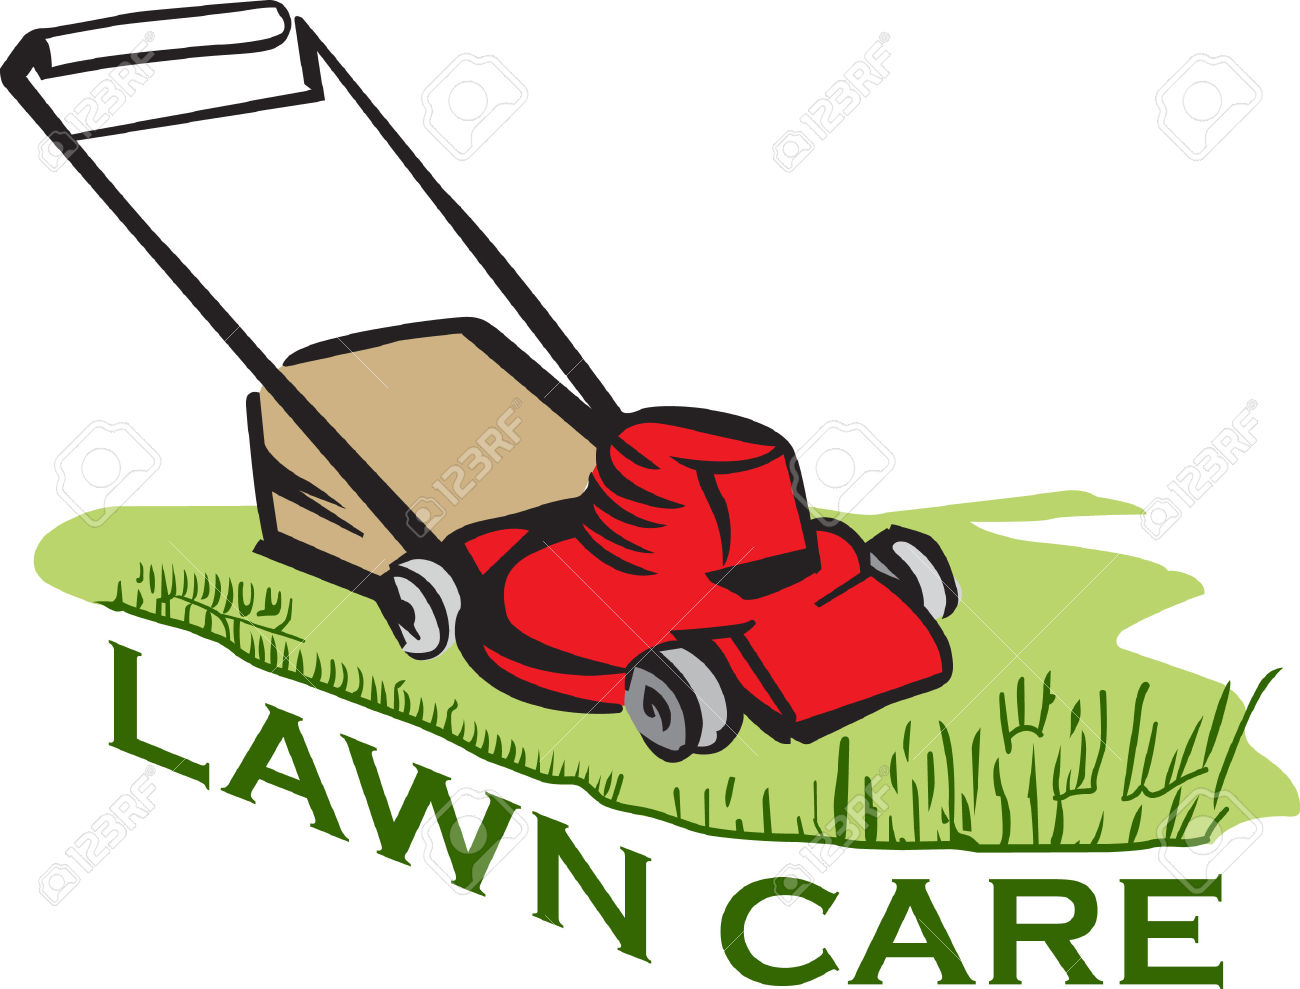 Mowing clipart nice, Mowing nice Transparent FREE for.